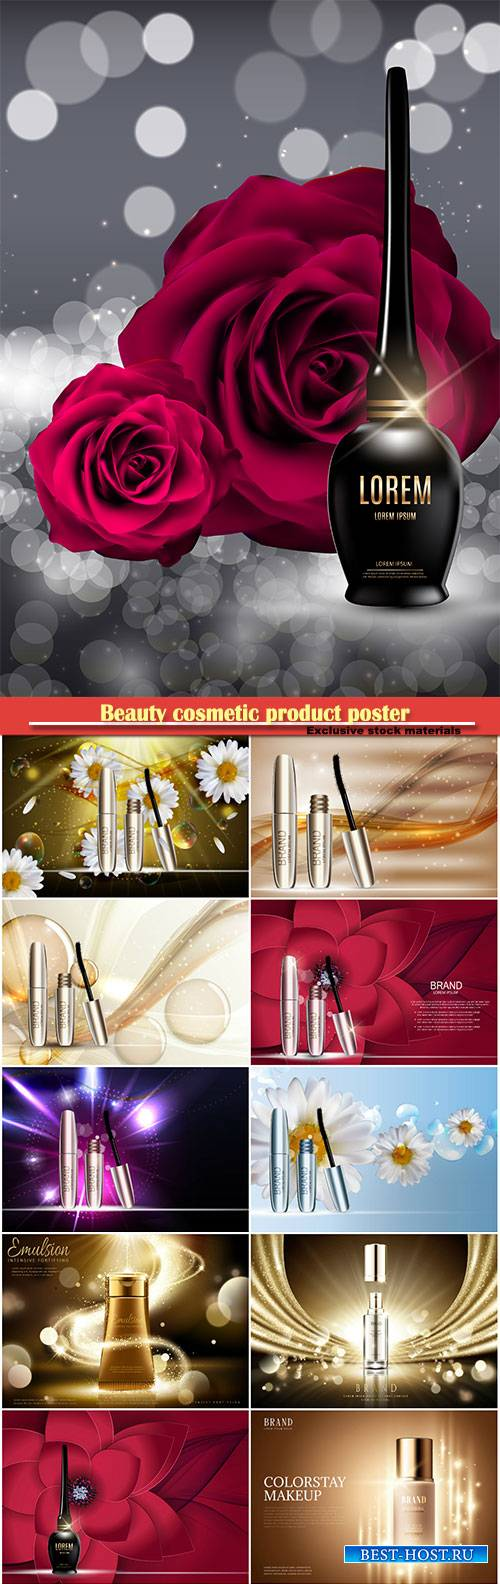 Beauty cosmetic product poster, fashion design makeup cosmetics, background ...